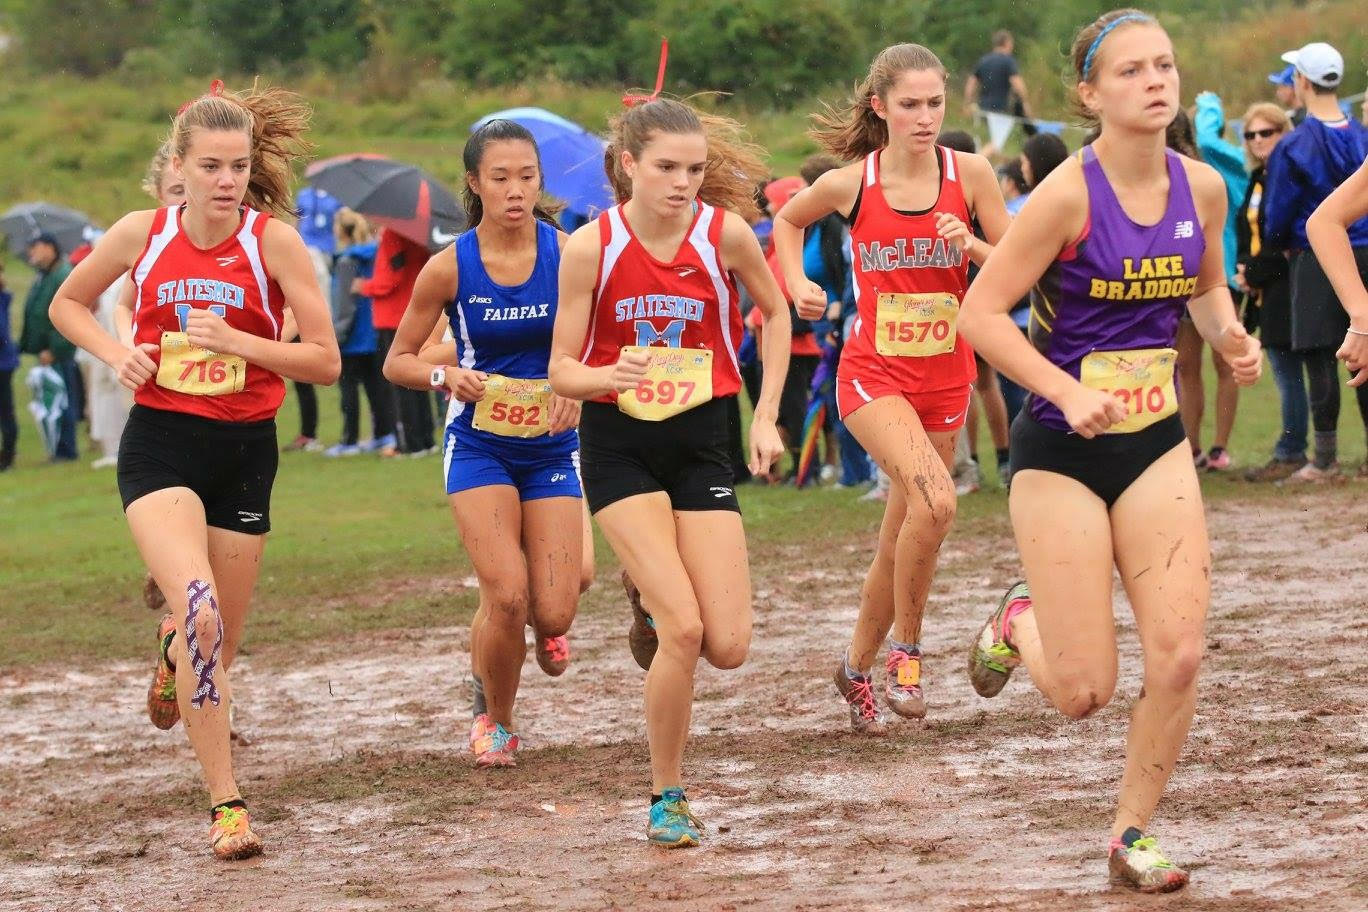 Caroline Howley, a McLean cross country co-captain, competes at muddy race along with other local high schools.